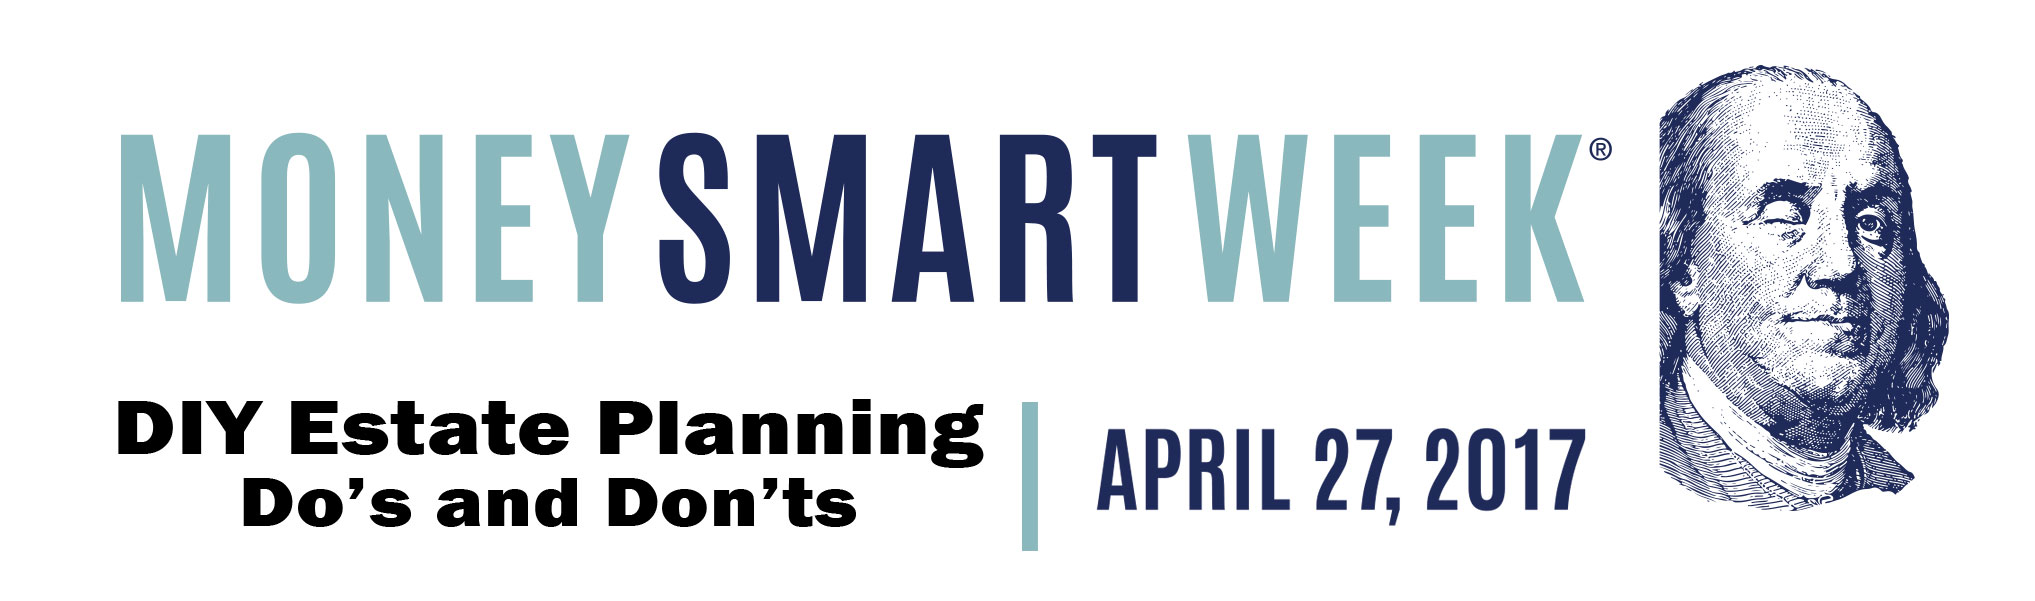 DeKalb County Community Foundation, Money Smart Week, DIY Estate Plannning Do's and Don'ts program